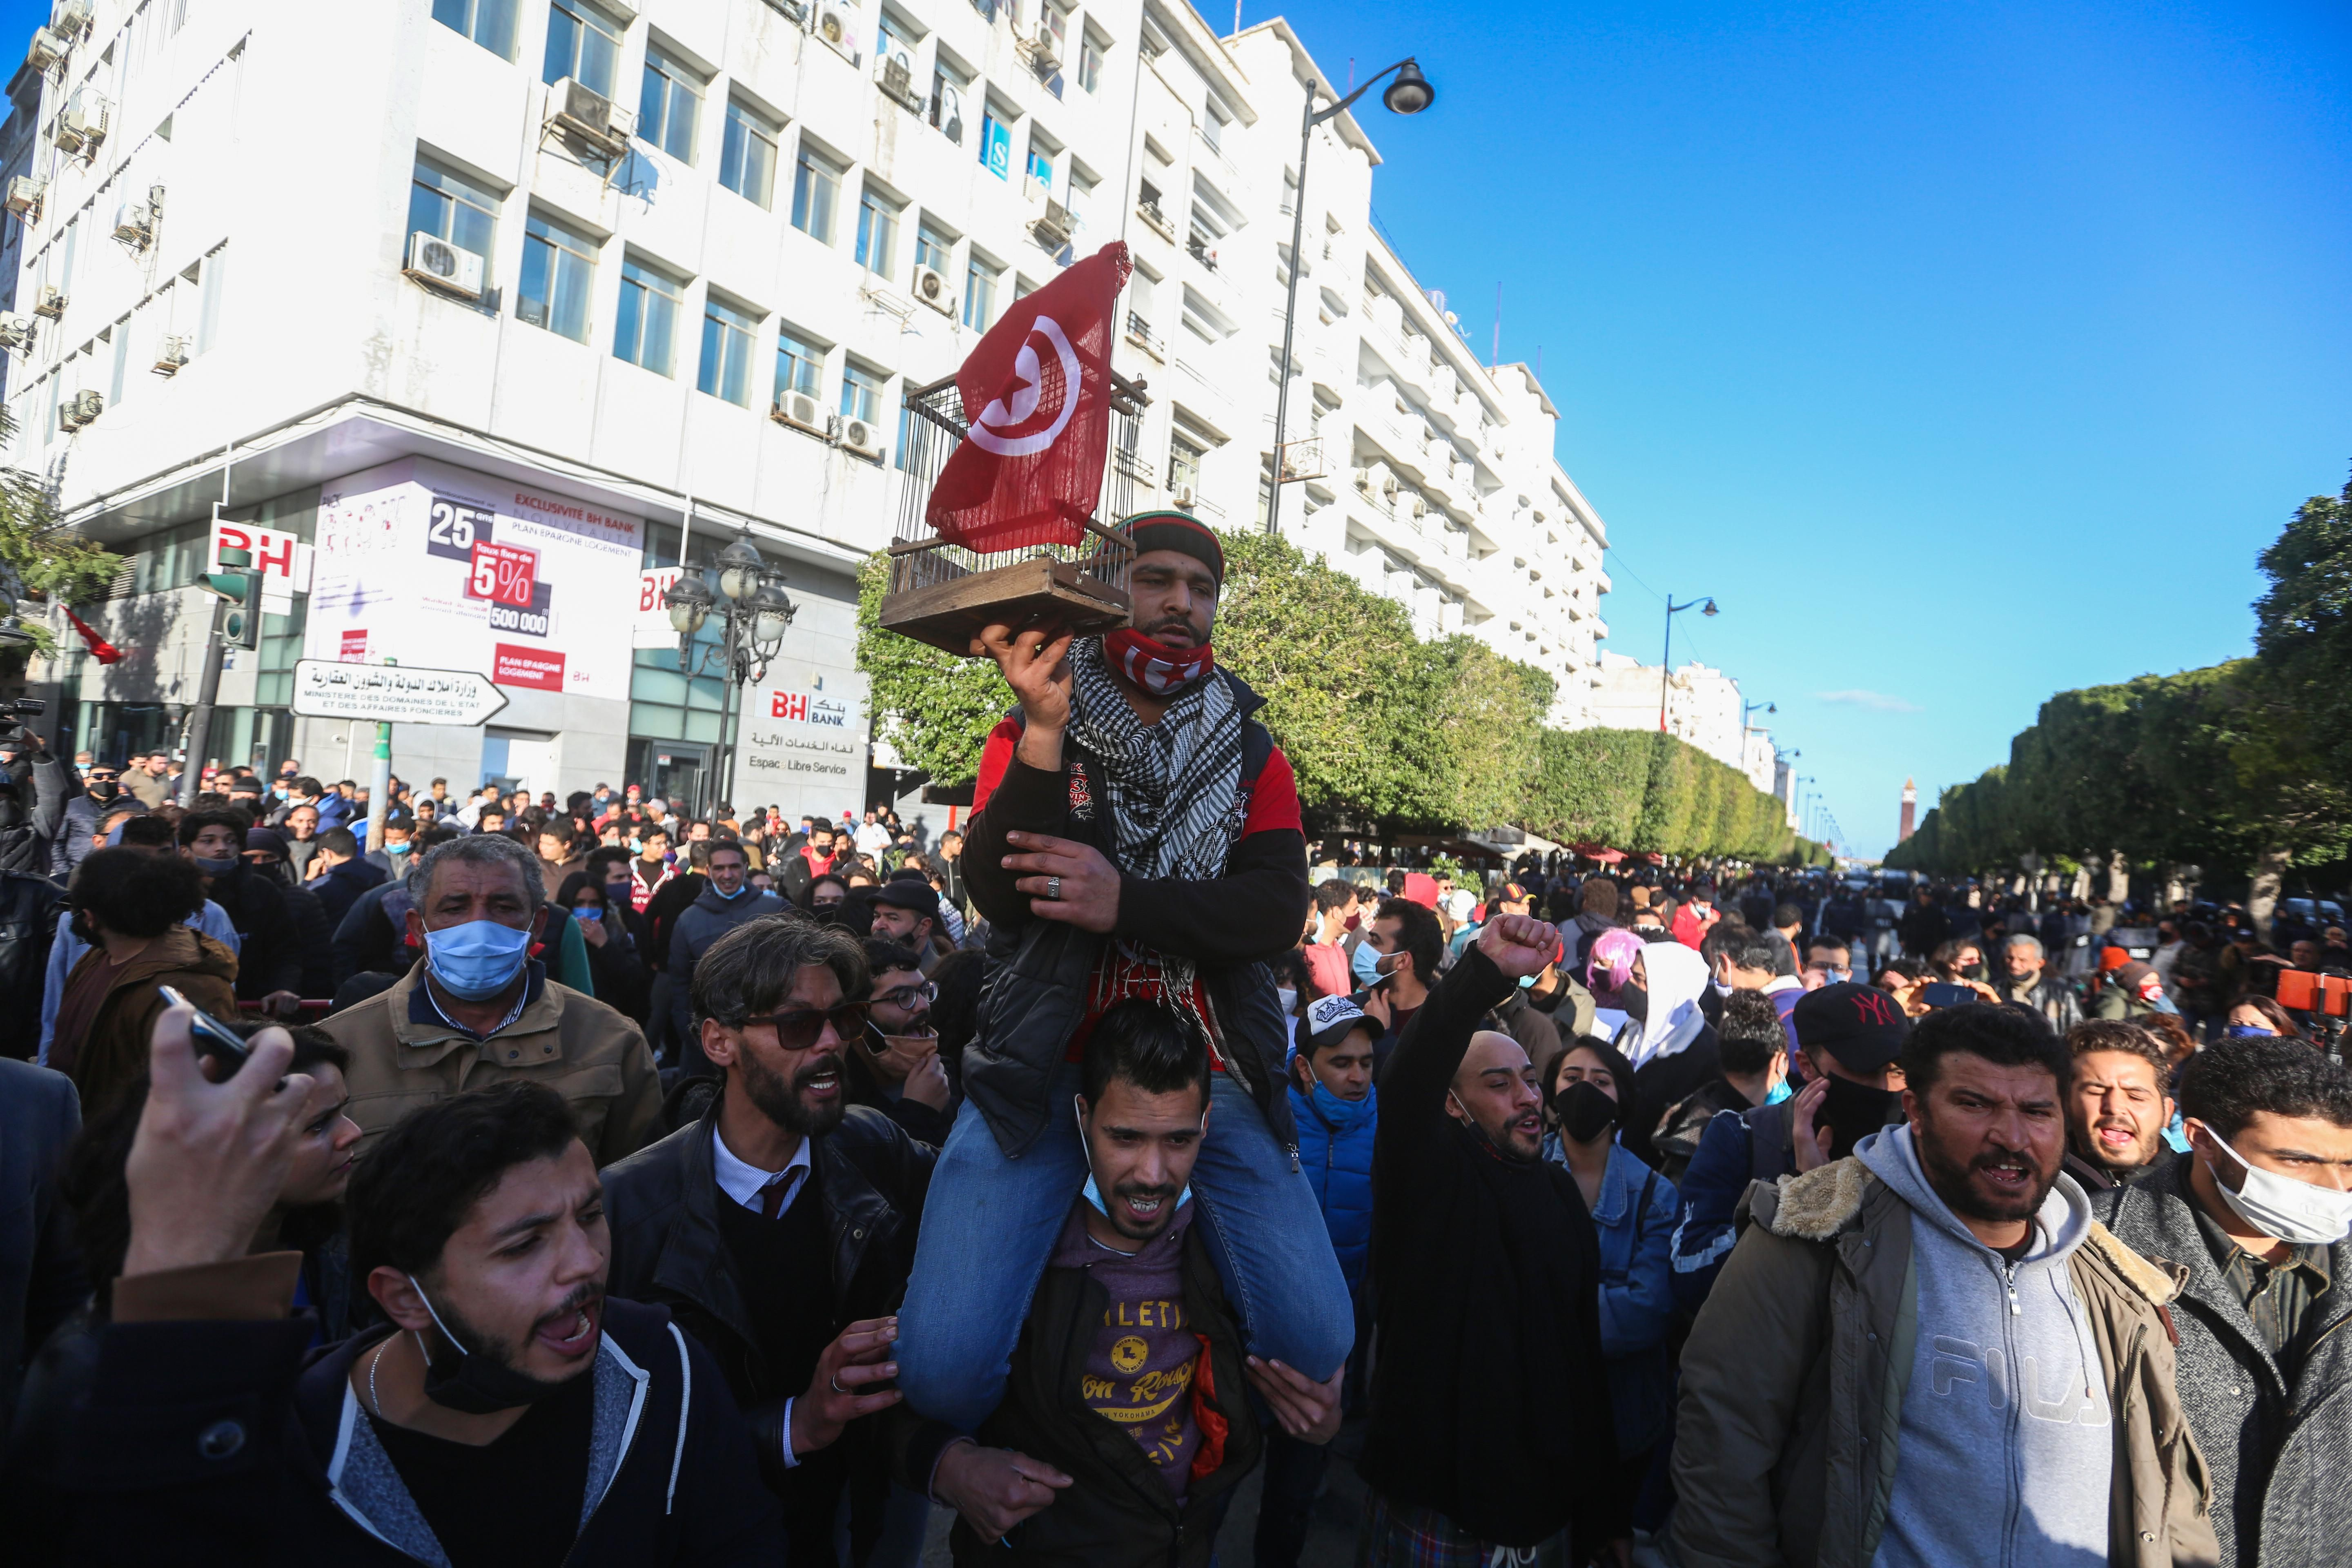 Protesters demand fall of the regime in Tunisia. Reuters